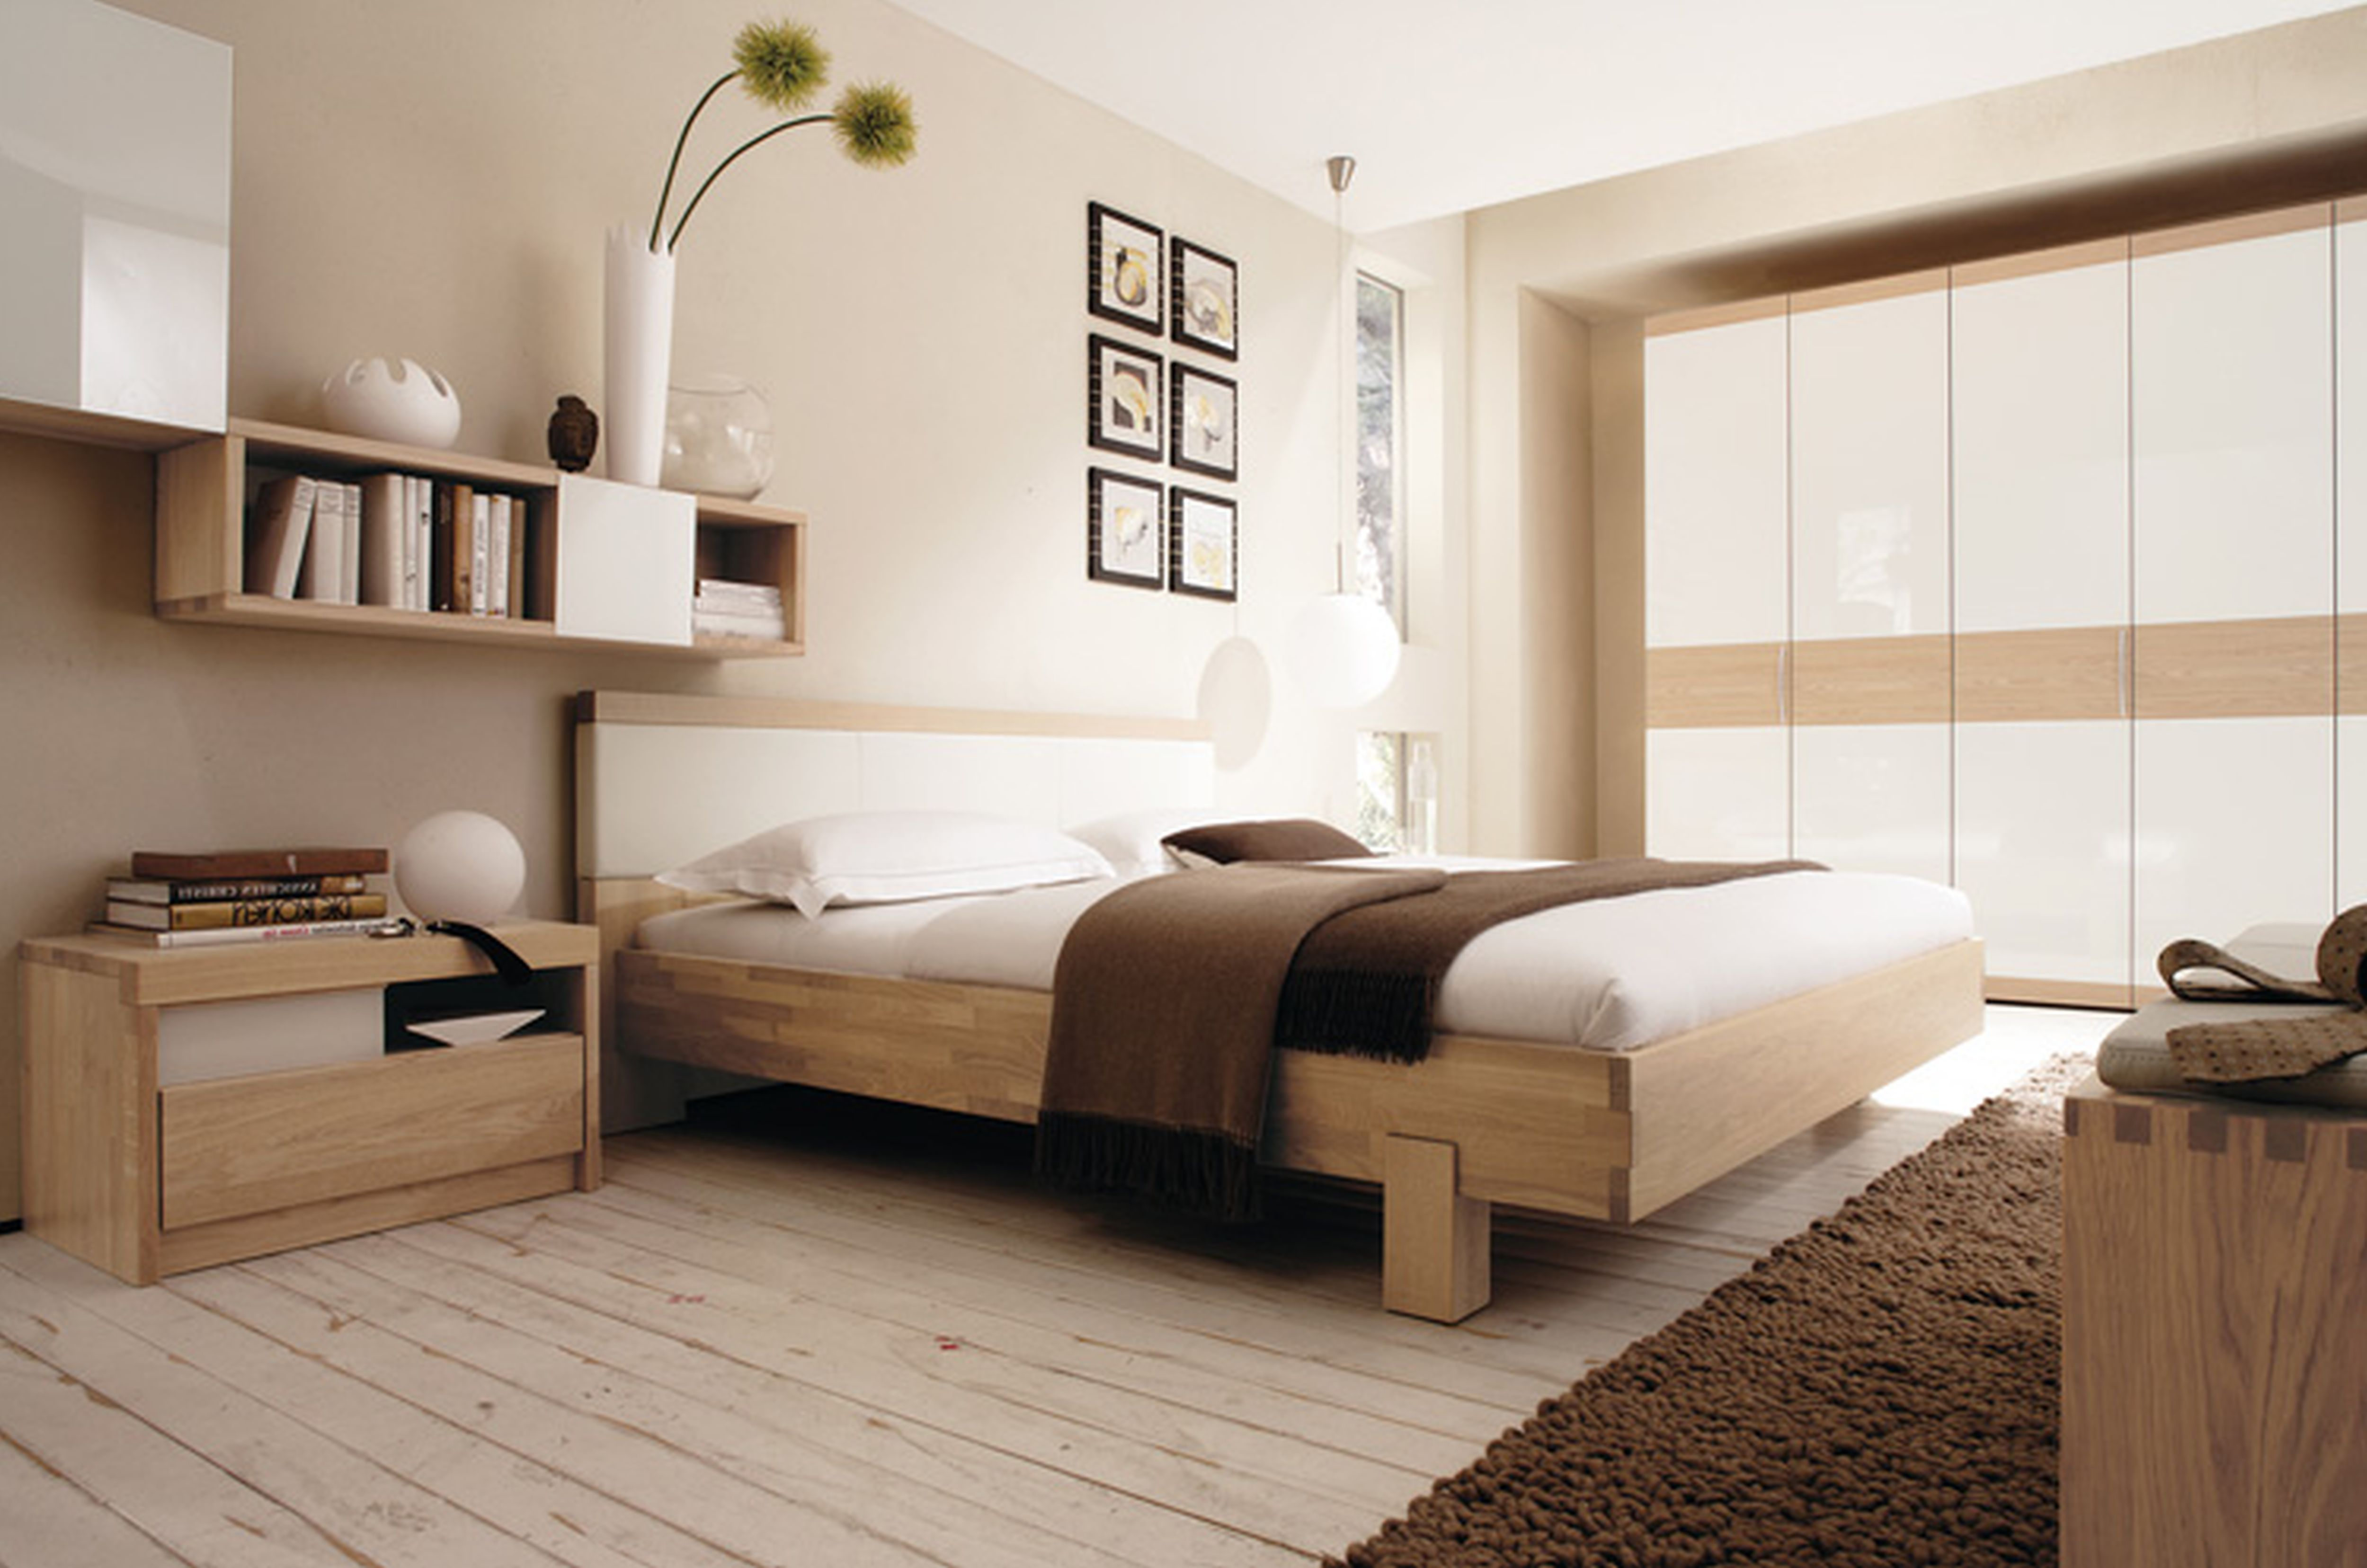 Bedroom Design Gallery For Inspiration The Wow Style